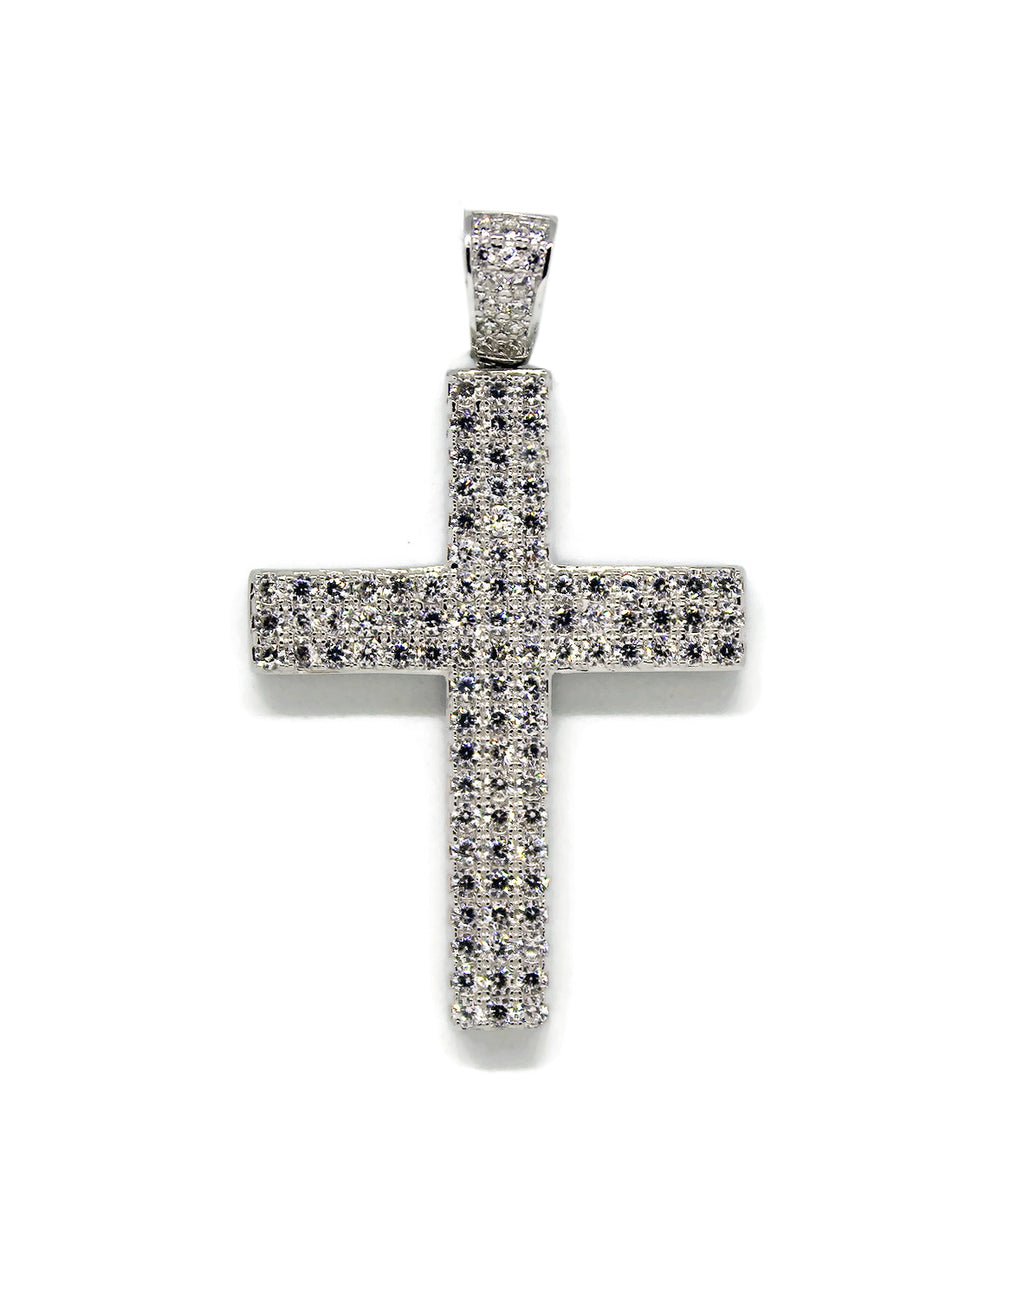 CROSS III PENDANT